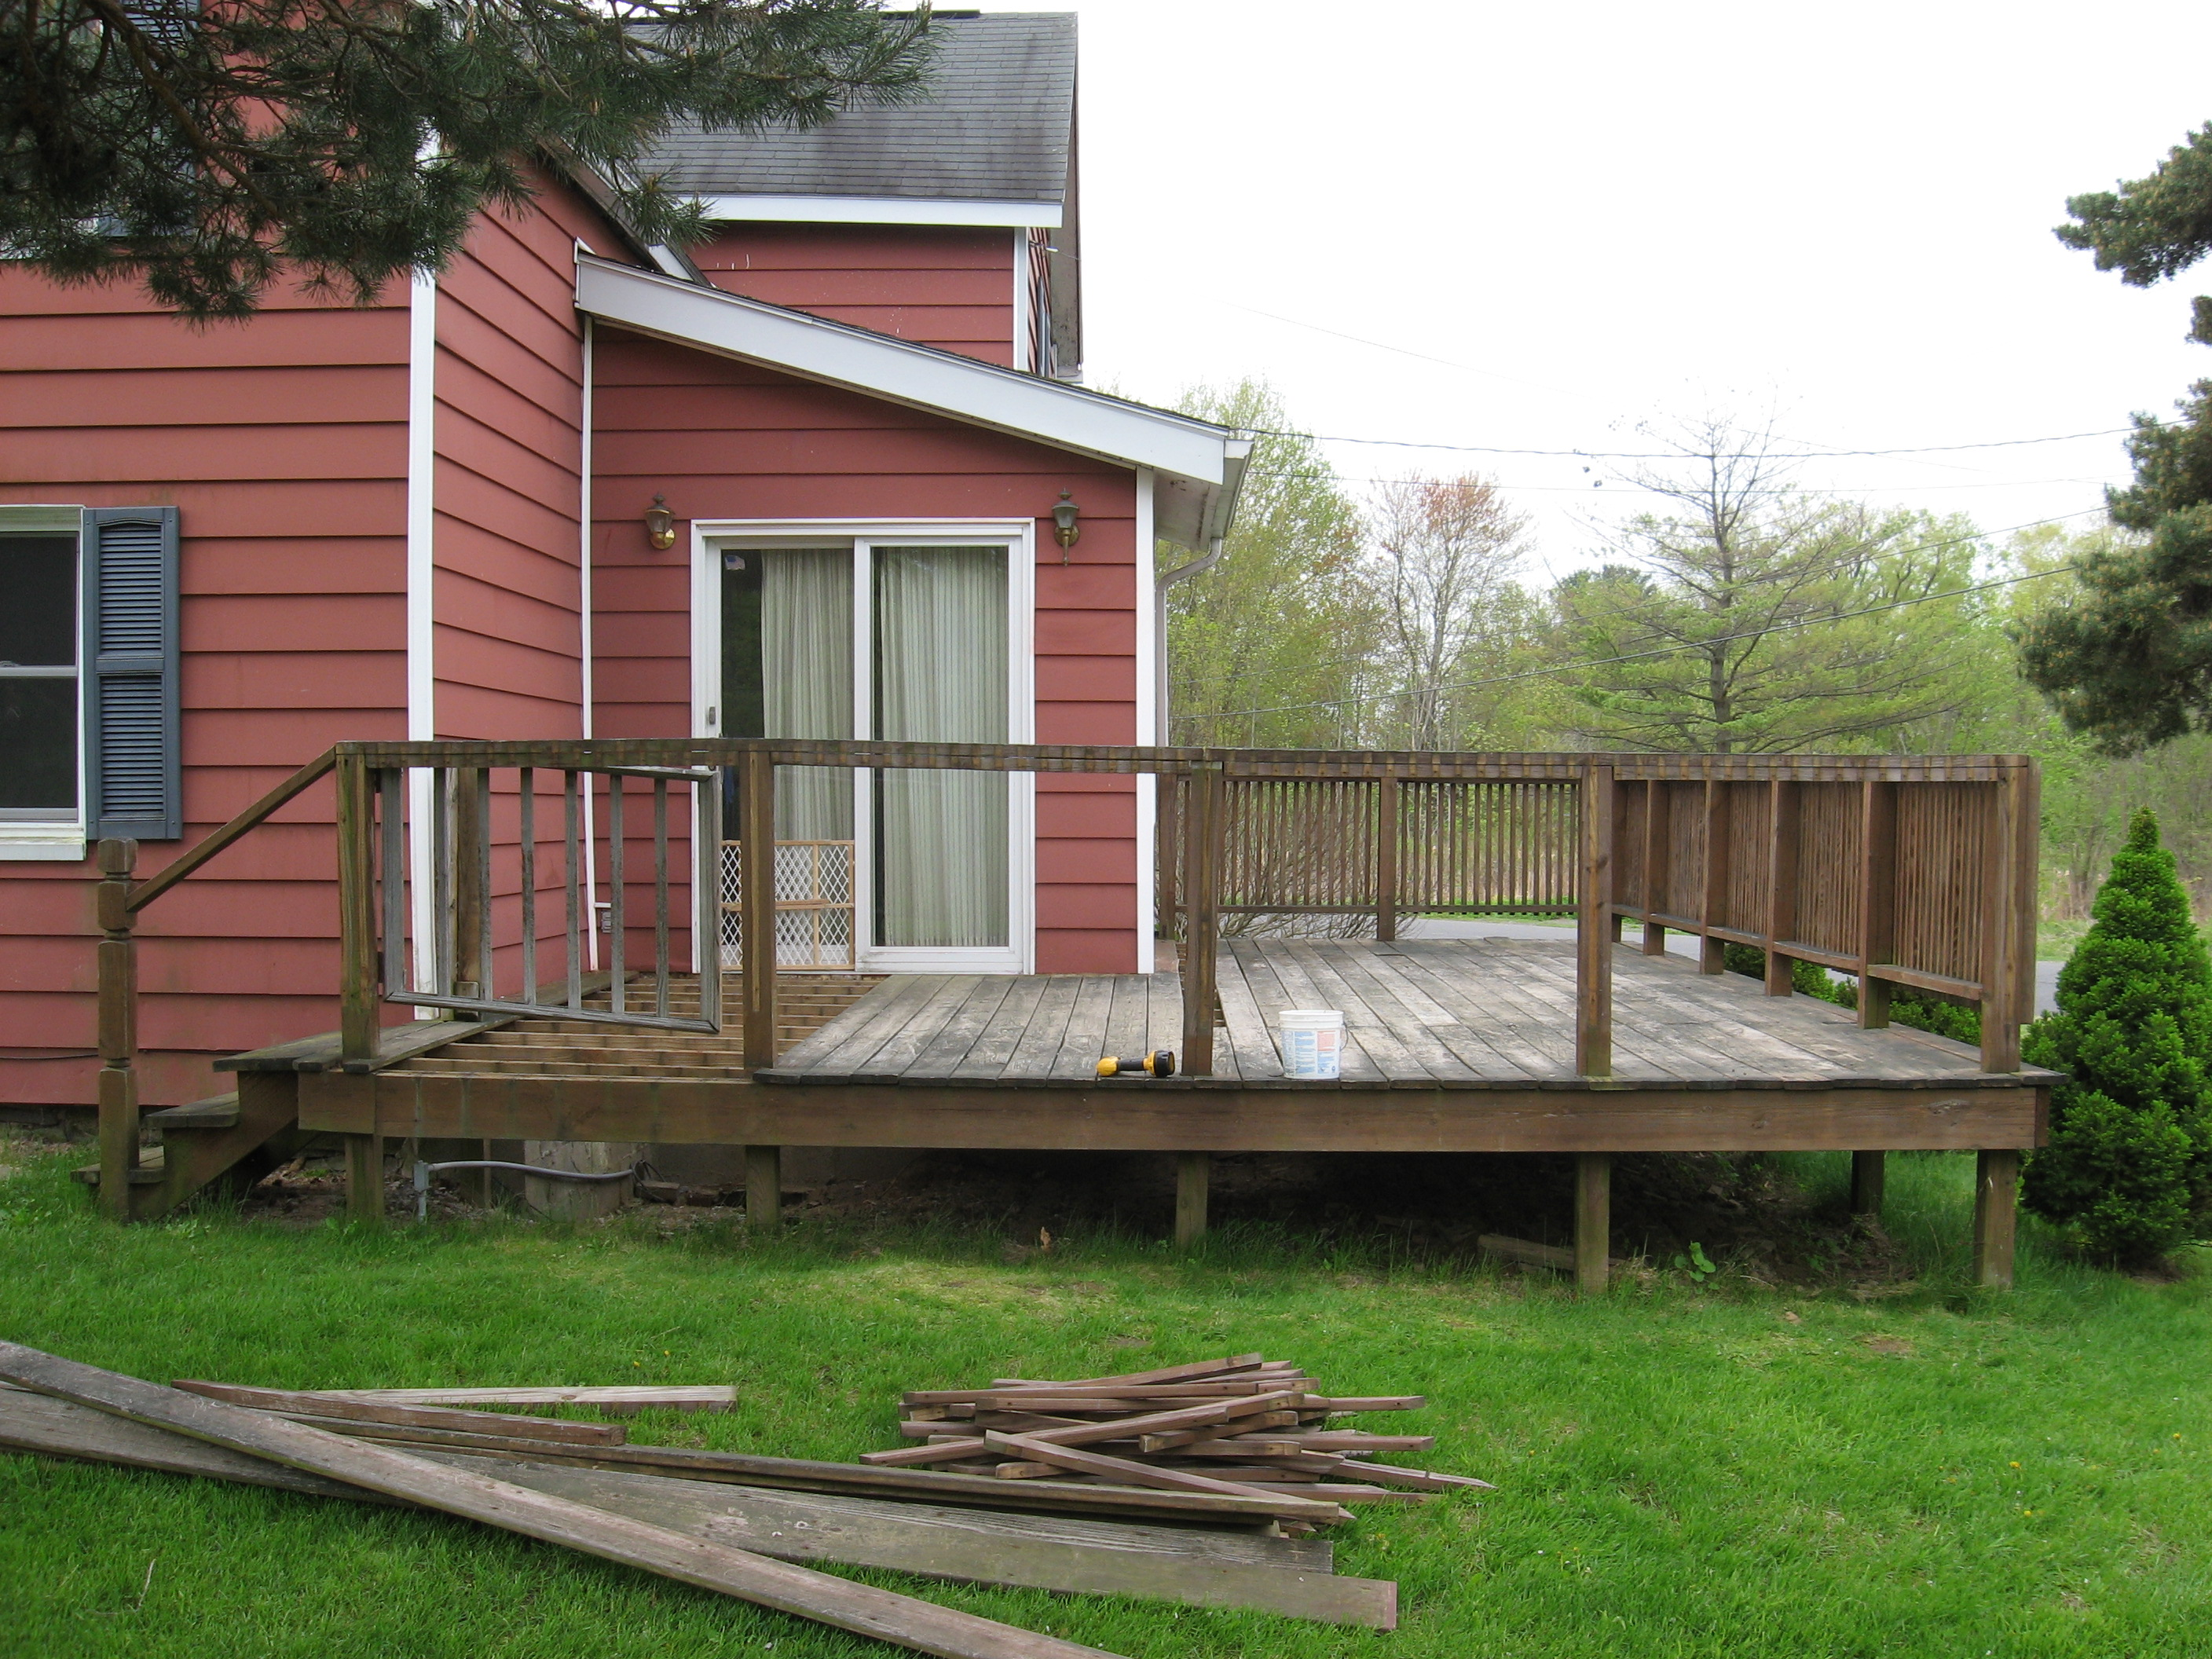 Old farmhouse with deteriorating deck